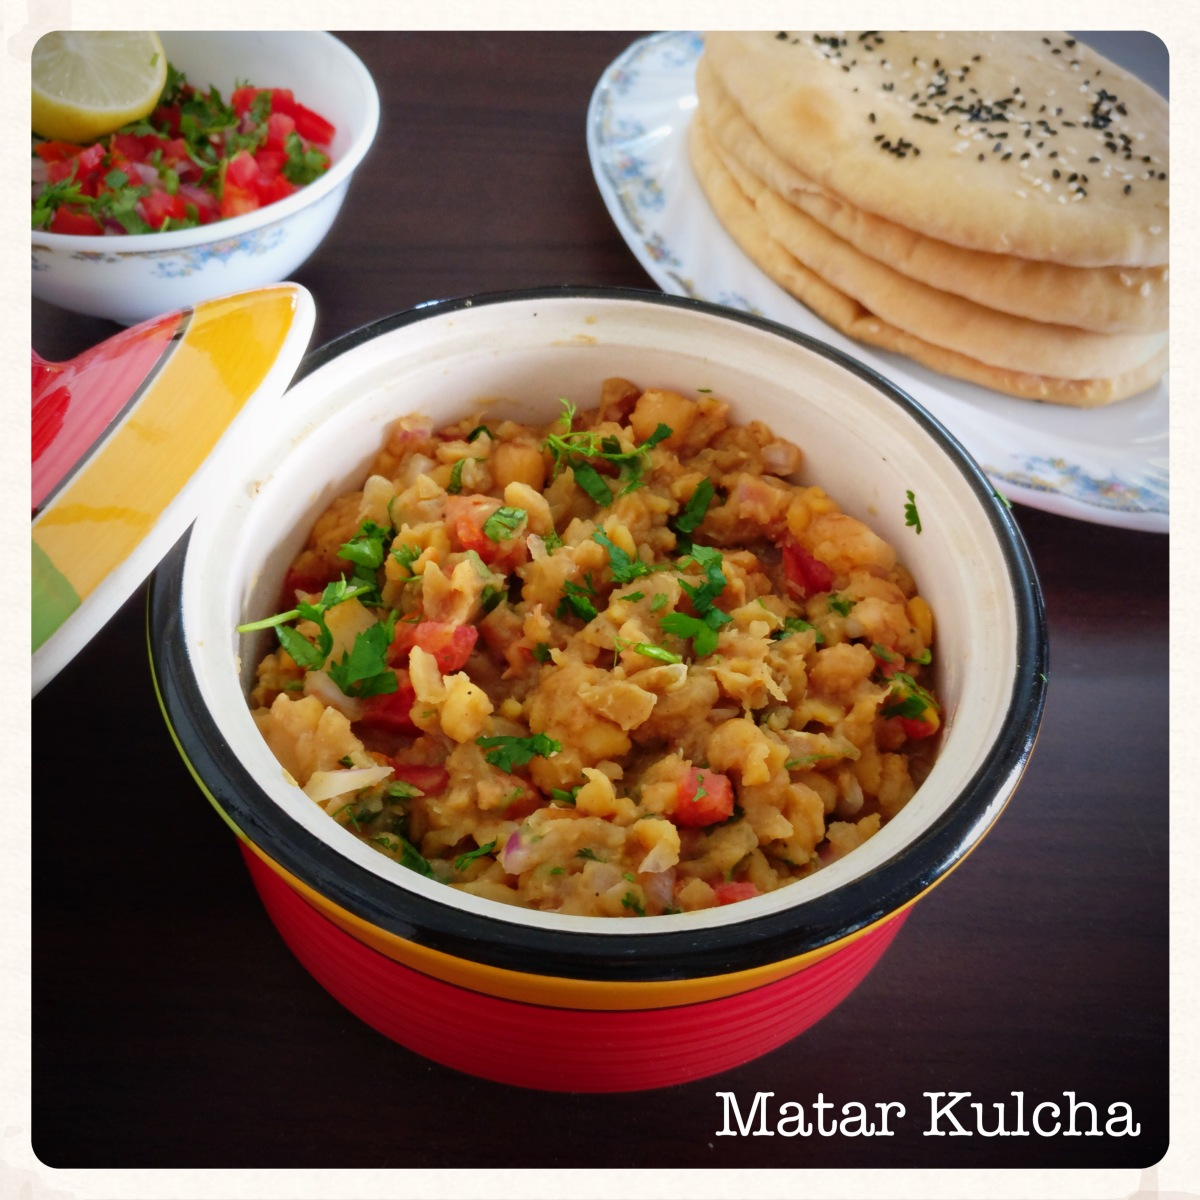 Matar Kulcha (Multigrain) Recipe